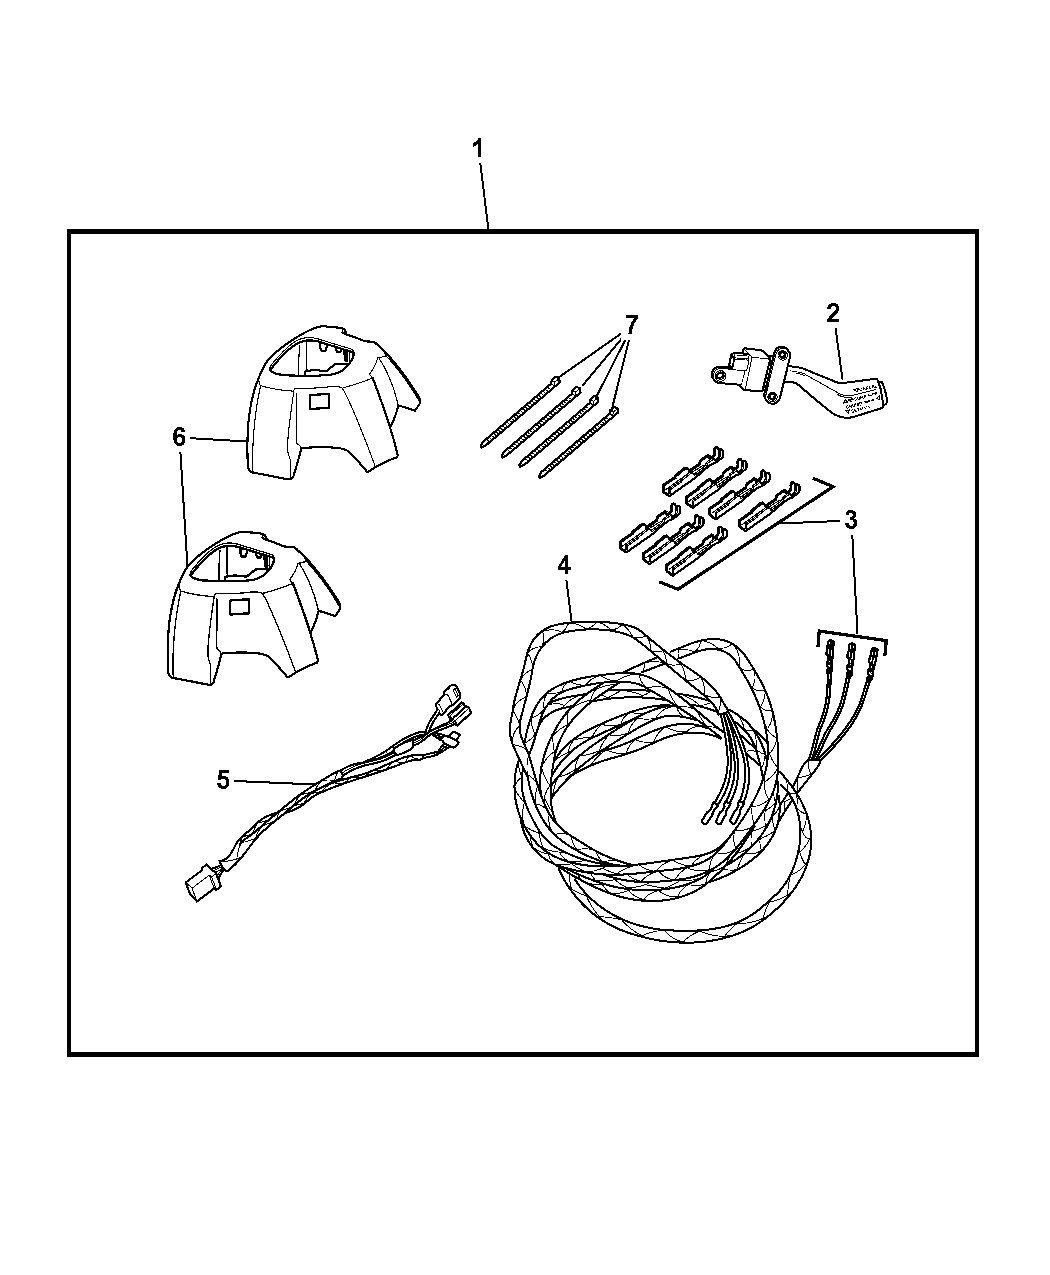 2009 Dodge Caliber Speed Control Of Mopar Accessories Component Parts Wiring Diagram